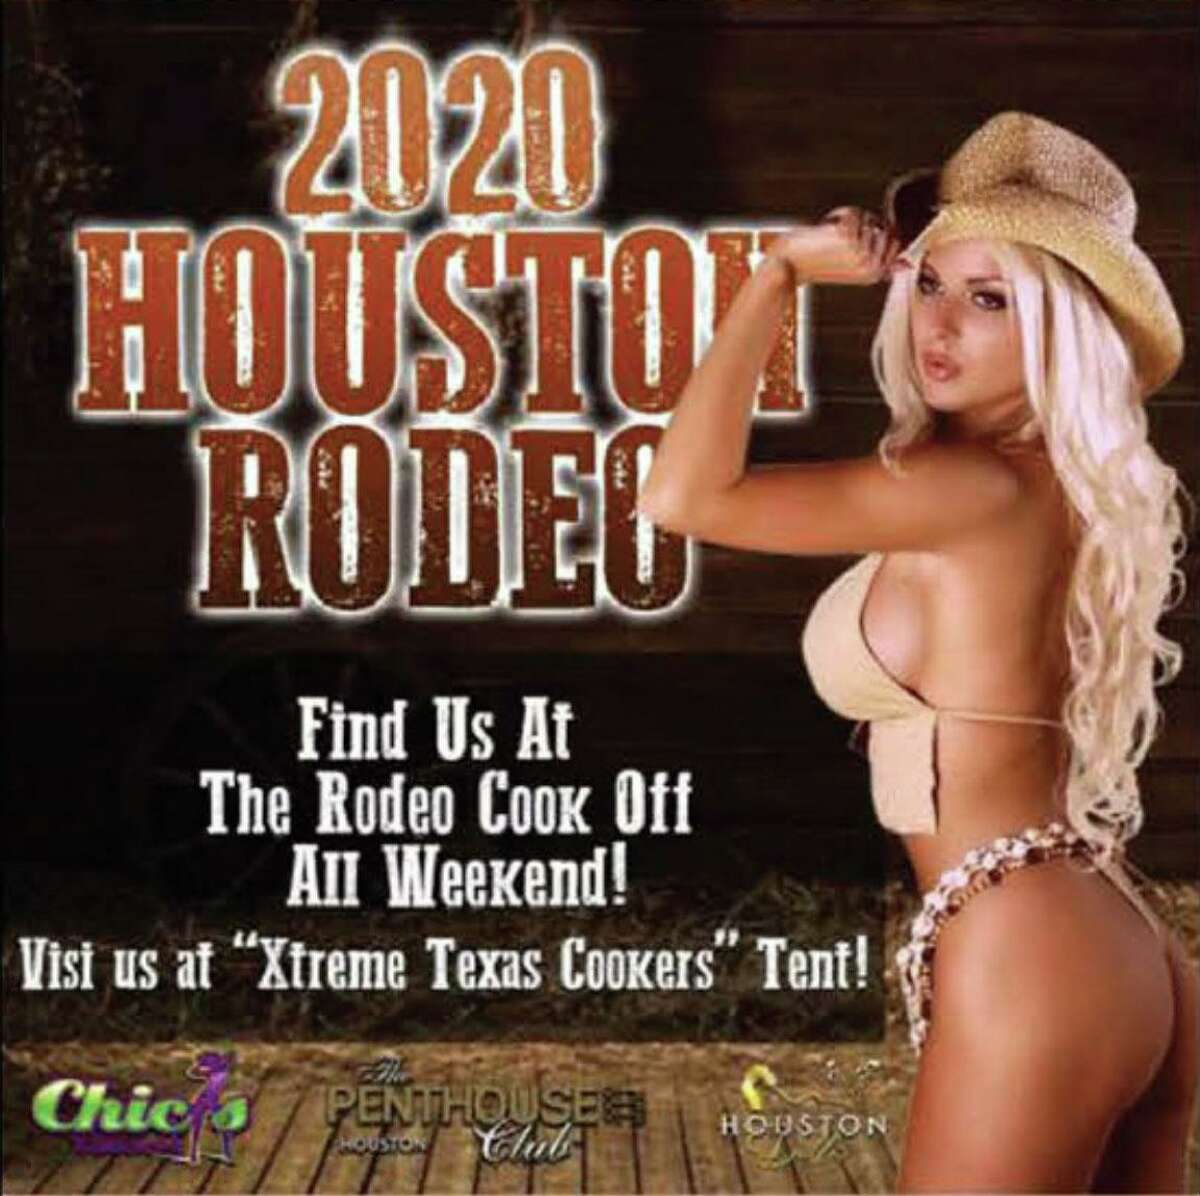 A group of models from California, Nevada, Oregon, Georgia and Texas are suing Chicas strip club saying it violated trademark law by using their images to promote events at the nude cabaret in North Houston.